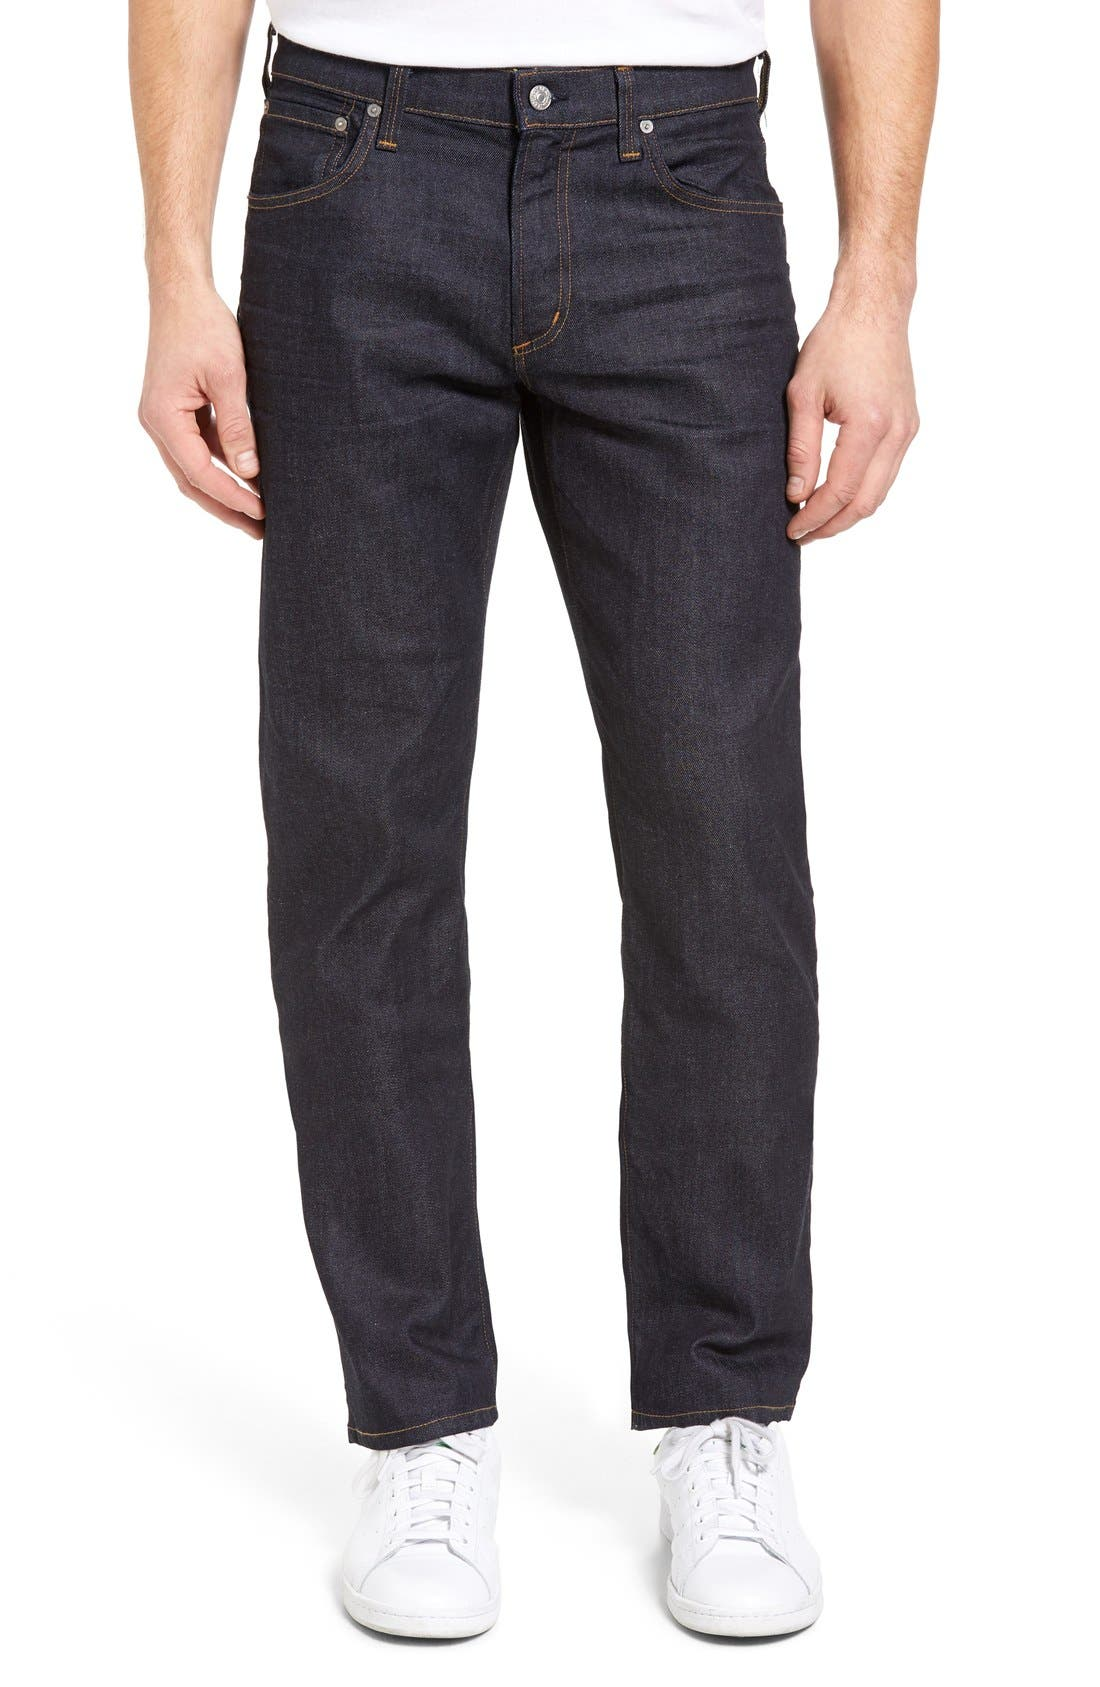 Sid Classic Straight Leg Jeans,                             Main thumbnail 1, color,                             Lafayette